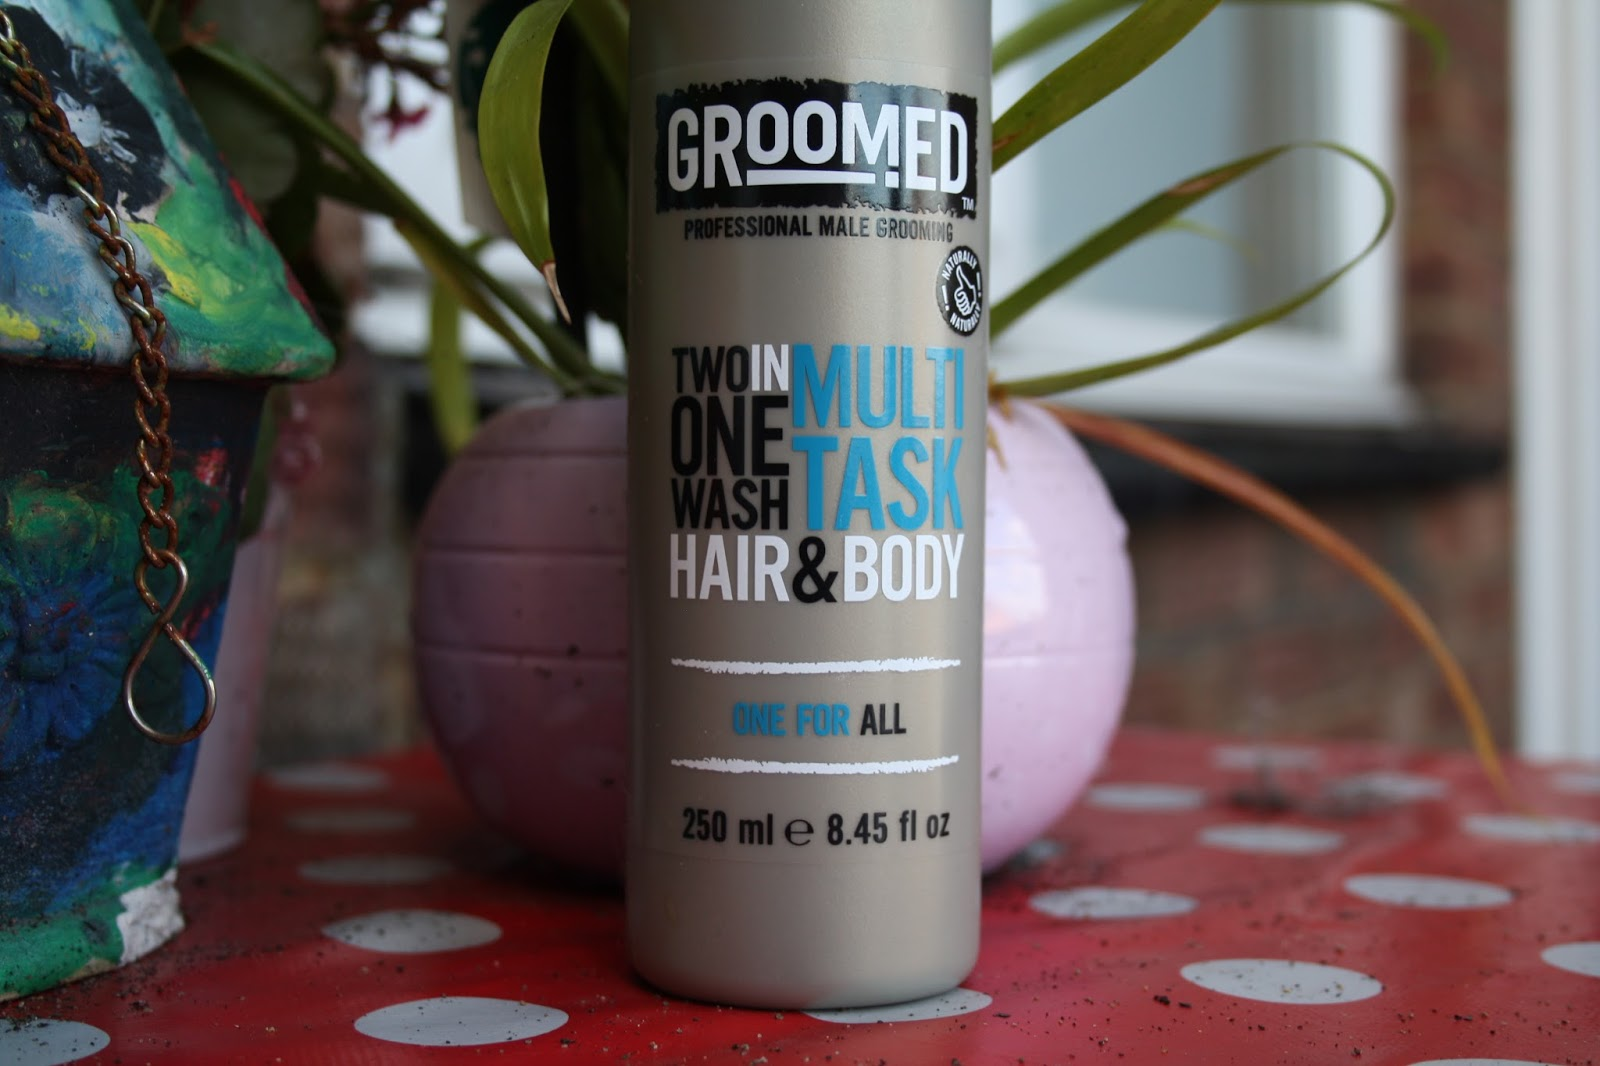 Groomed Two in One Wash - Hair & Body Multitask